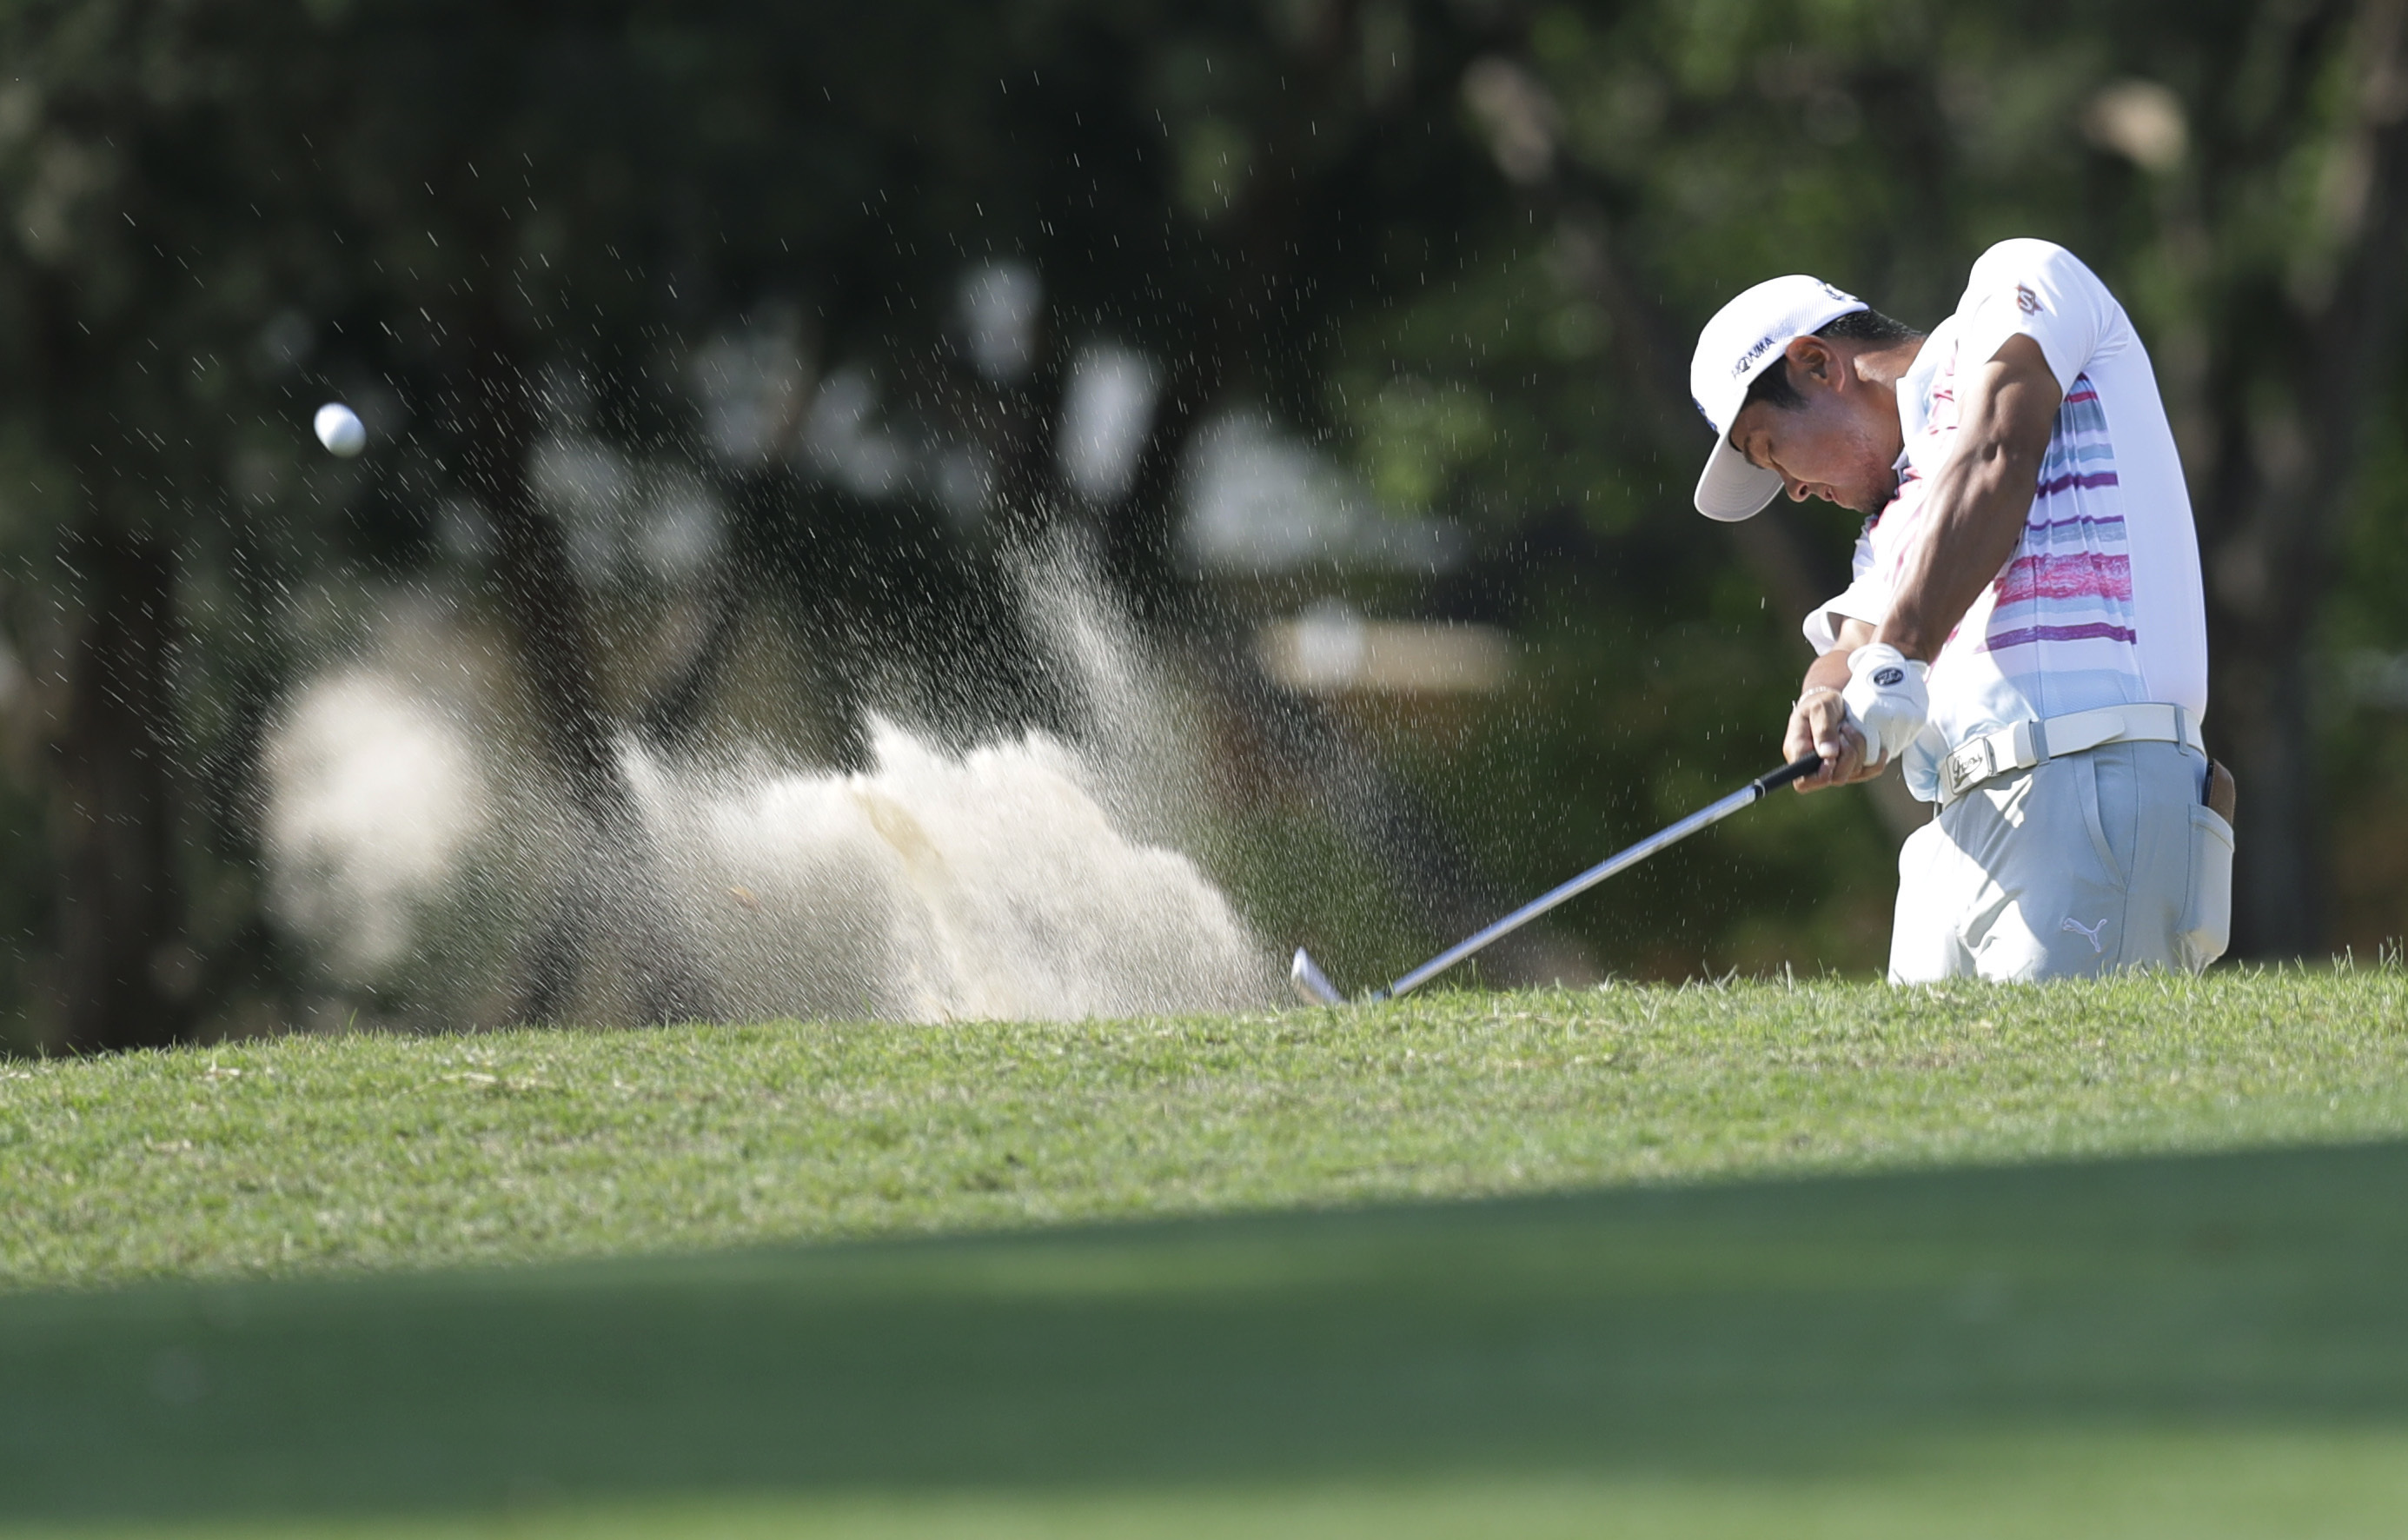 Hideto Tanihara of Japan plays a shot from a bunker on the sixth hole during semifinal play at the Dell Technologies Match Play golf tournament at Austin County Club, Sunday, March 26, 2017, in Austin, Texas. (AP Photo/Eric Gay)